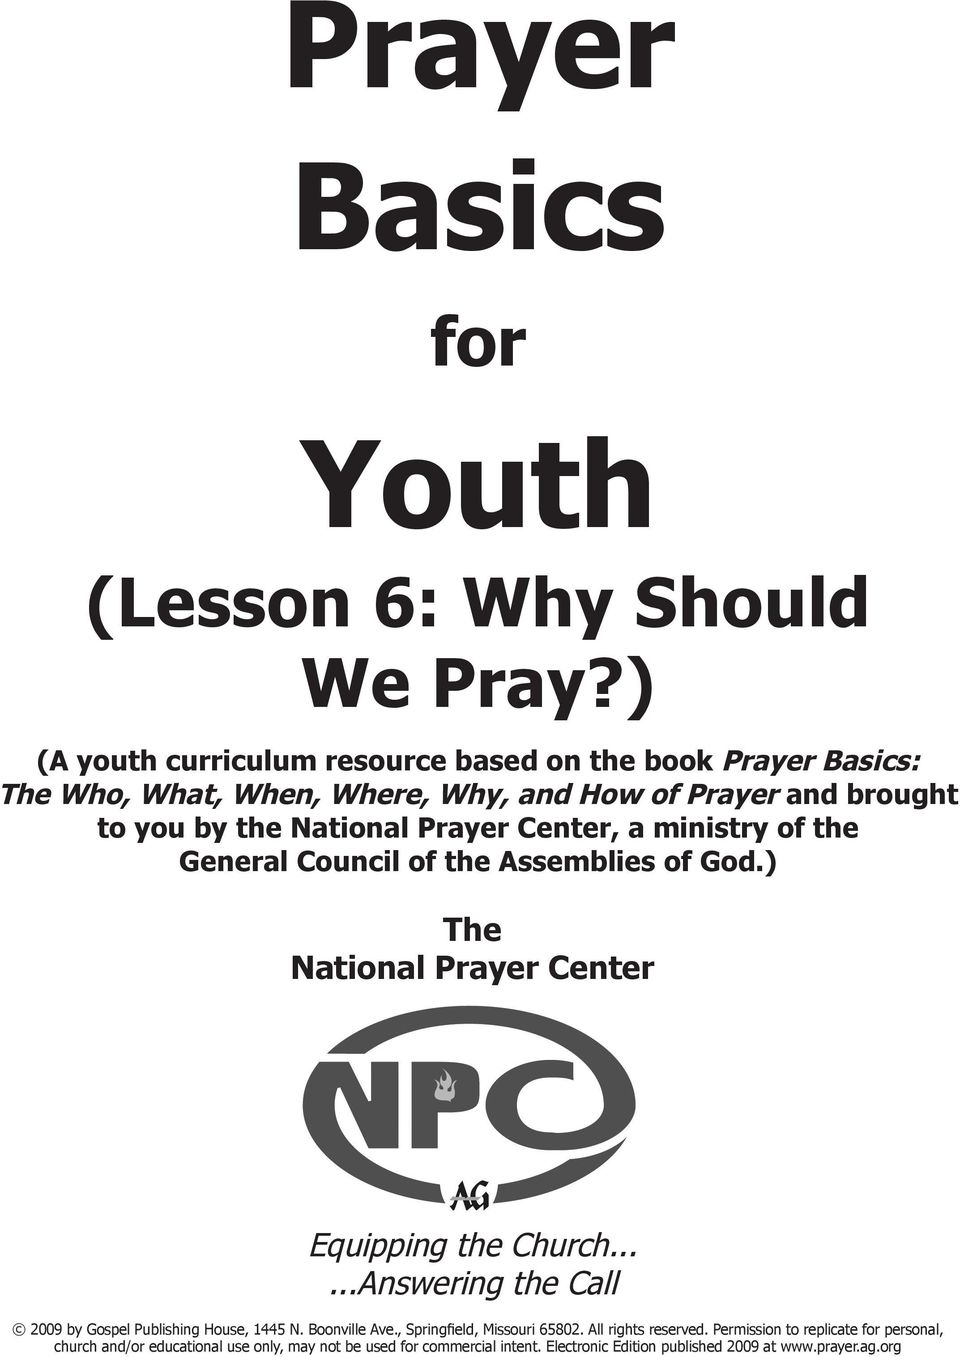 Where, Why, and How of Prayer and brought to you by the National Prayer Center, a